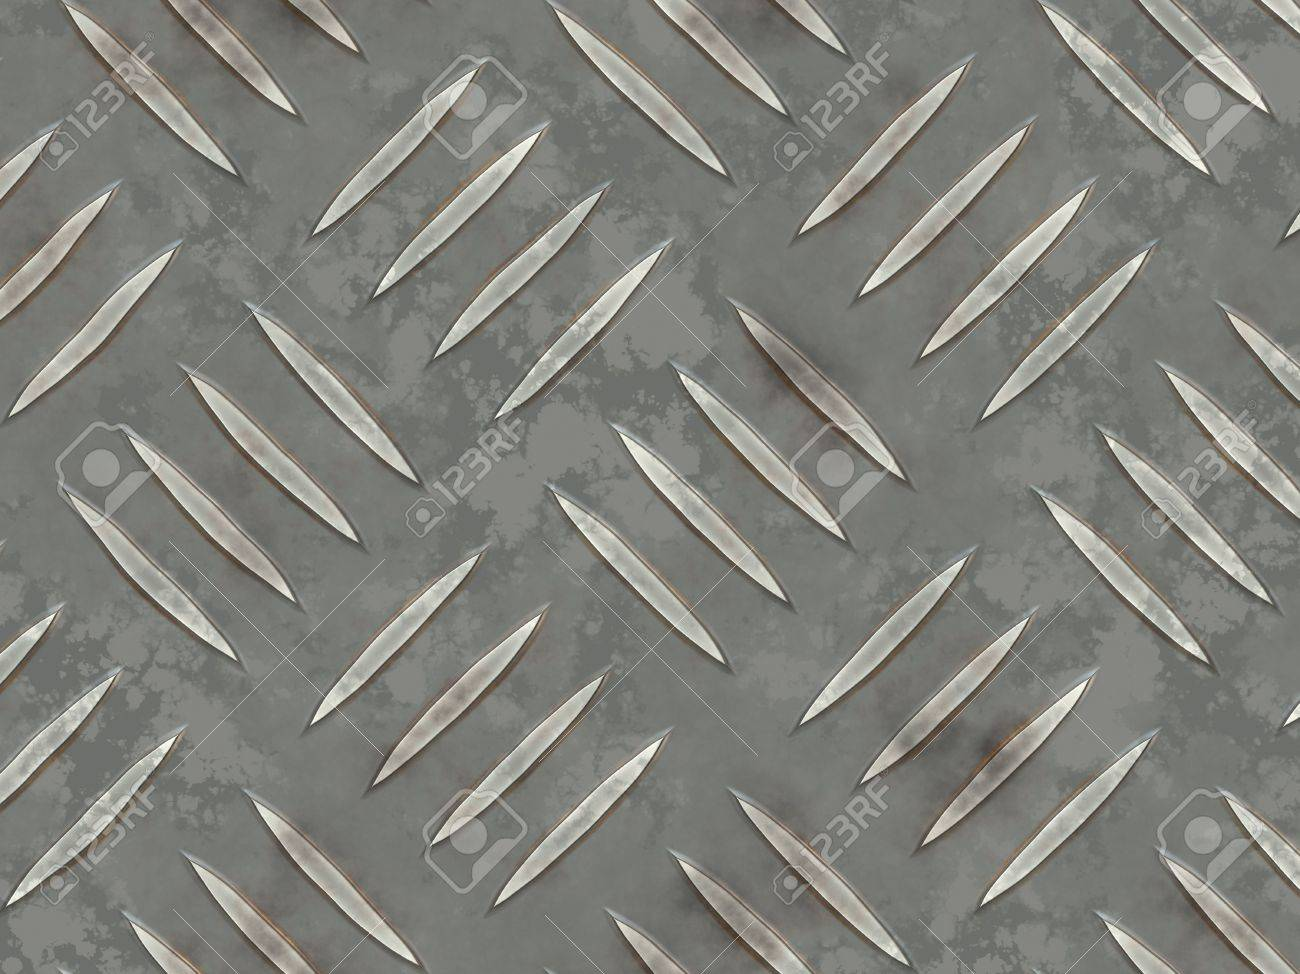 Grated Iron Flooring With Texture Abstract Background Stock Photo - Rubber grate flooring